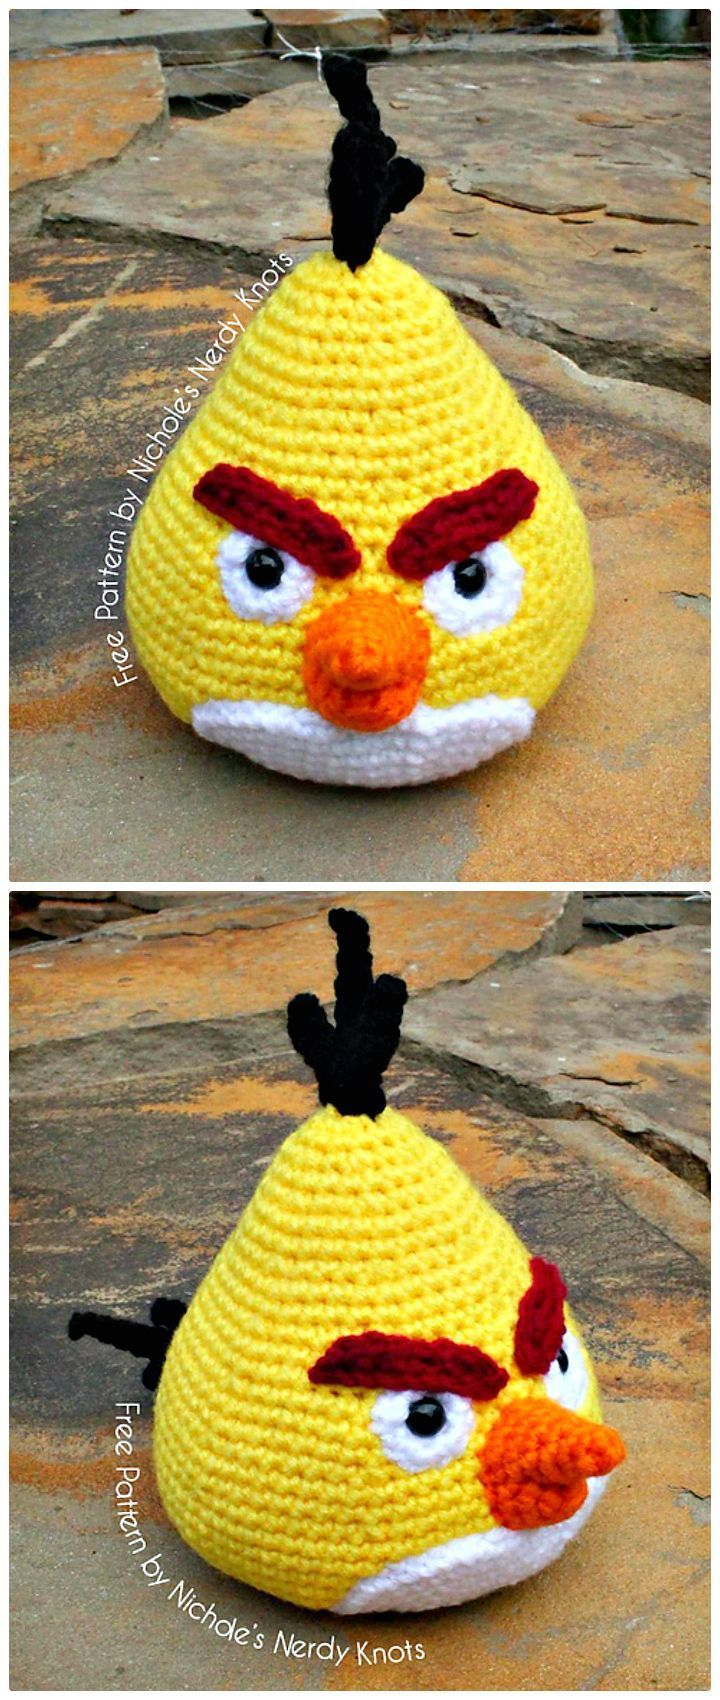 Ravelry: Angry Birds - Cardinal pattern by Adorable Amigurumi | 1700x720